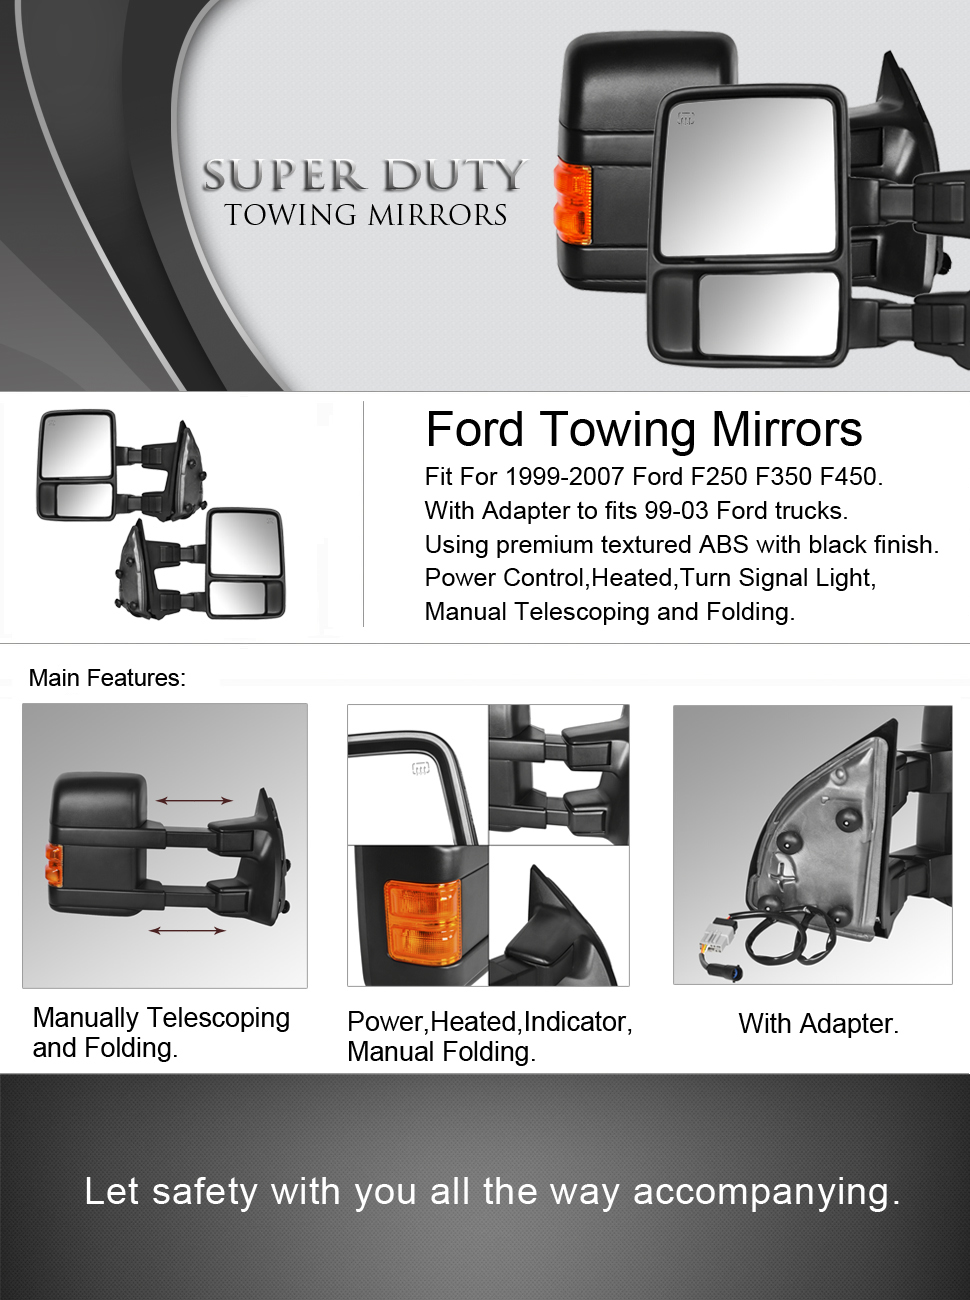 Amazon.com: DEDC Ford Towing Mirrors F250 Ford Tow Mirrors F350 F450 on 2000 f350 dimensions, 2000 f350 suspension, 2000 f350 speedometer, 2000 f350 charging system, 2000 f350 wheels, 2000 f350 radio, 2000 f350 solenoid, 2001 f250 power distribution diagram, 2000 f350 steering, 2000 f350 parts, 2000 f350 neutral safety switch, 2000 f350 fan belt, 99 f350 fuse panel diagram, 2000 f350 transmission, 2000 f350 fuse, 2000 f350 lights, 2000 f350 brakes, 2000 f350 accessories, 2000 f350 battery, 2000 f350 frame,